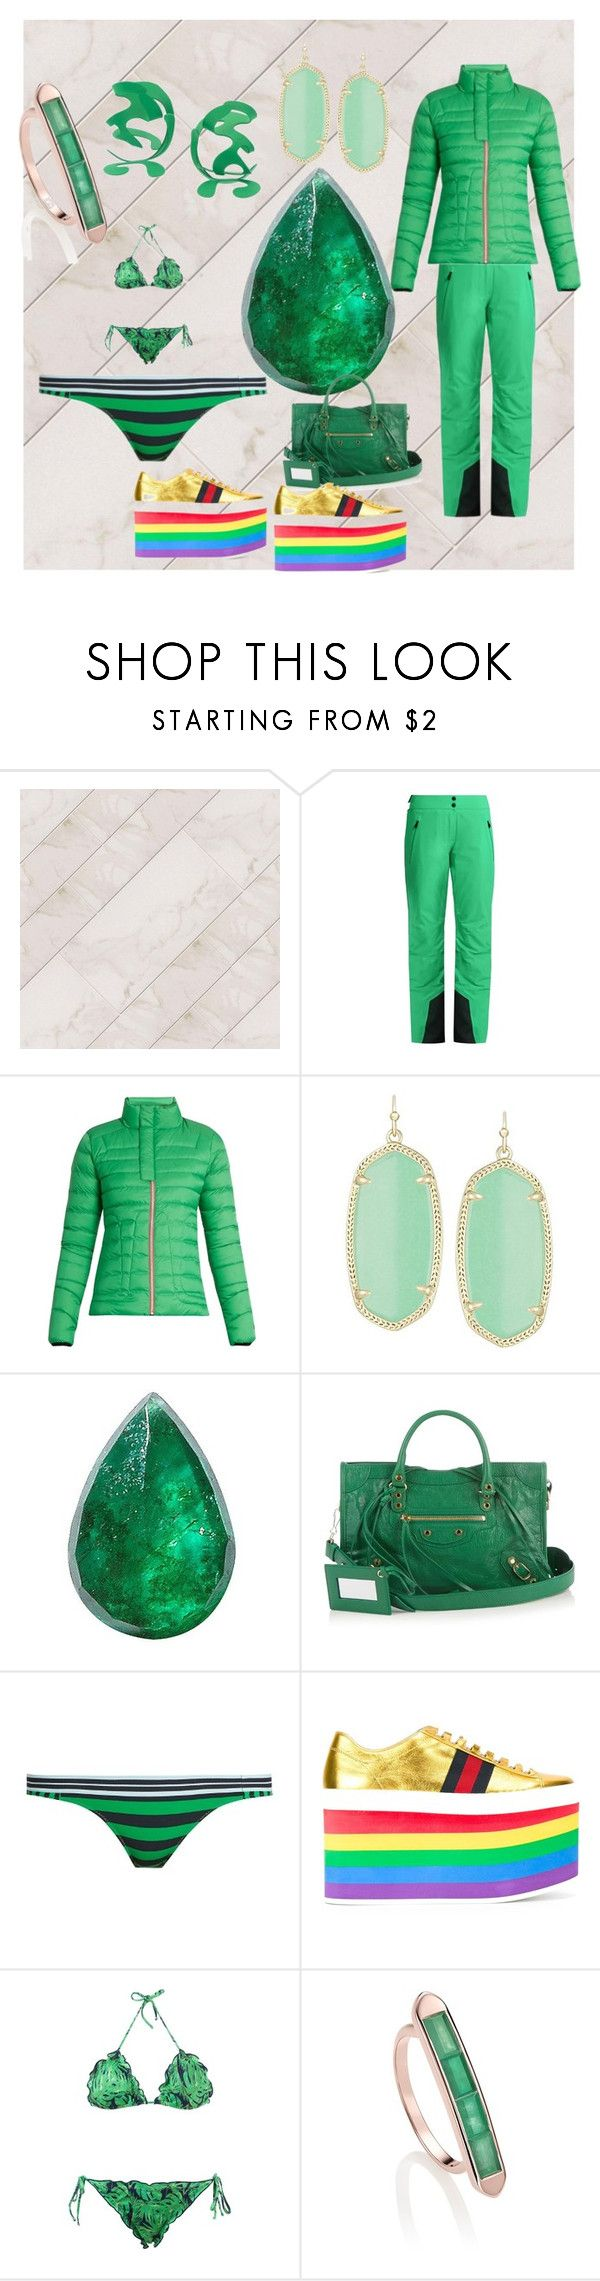 """""""best sale offer"""" by denisee-denisee ❤ liked on Polyvore featuring Perfect Moment, Kendra Scott, Loquet, Balenciaga, STELLA McCARTNEY, Gucci, Brigitte, Monica Vinader, Rosie Assoulin and vintage"""